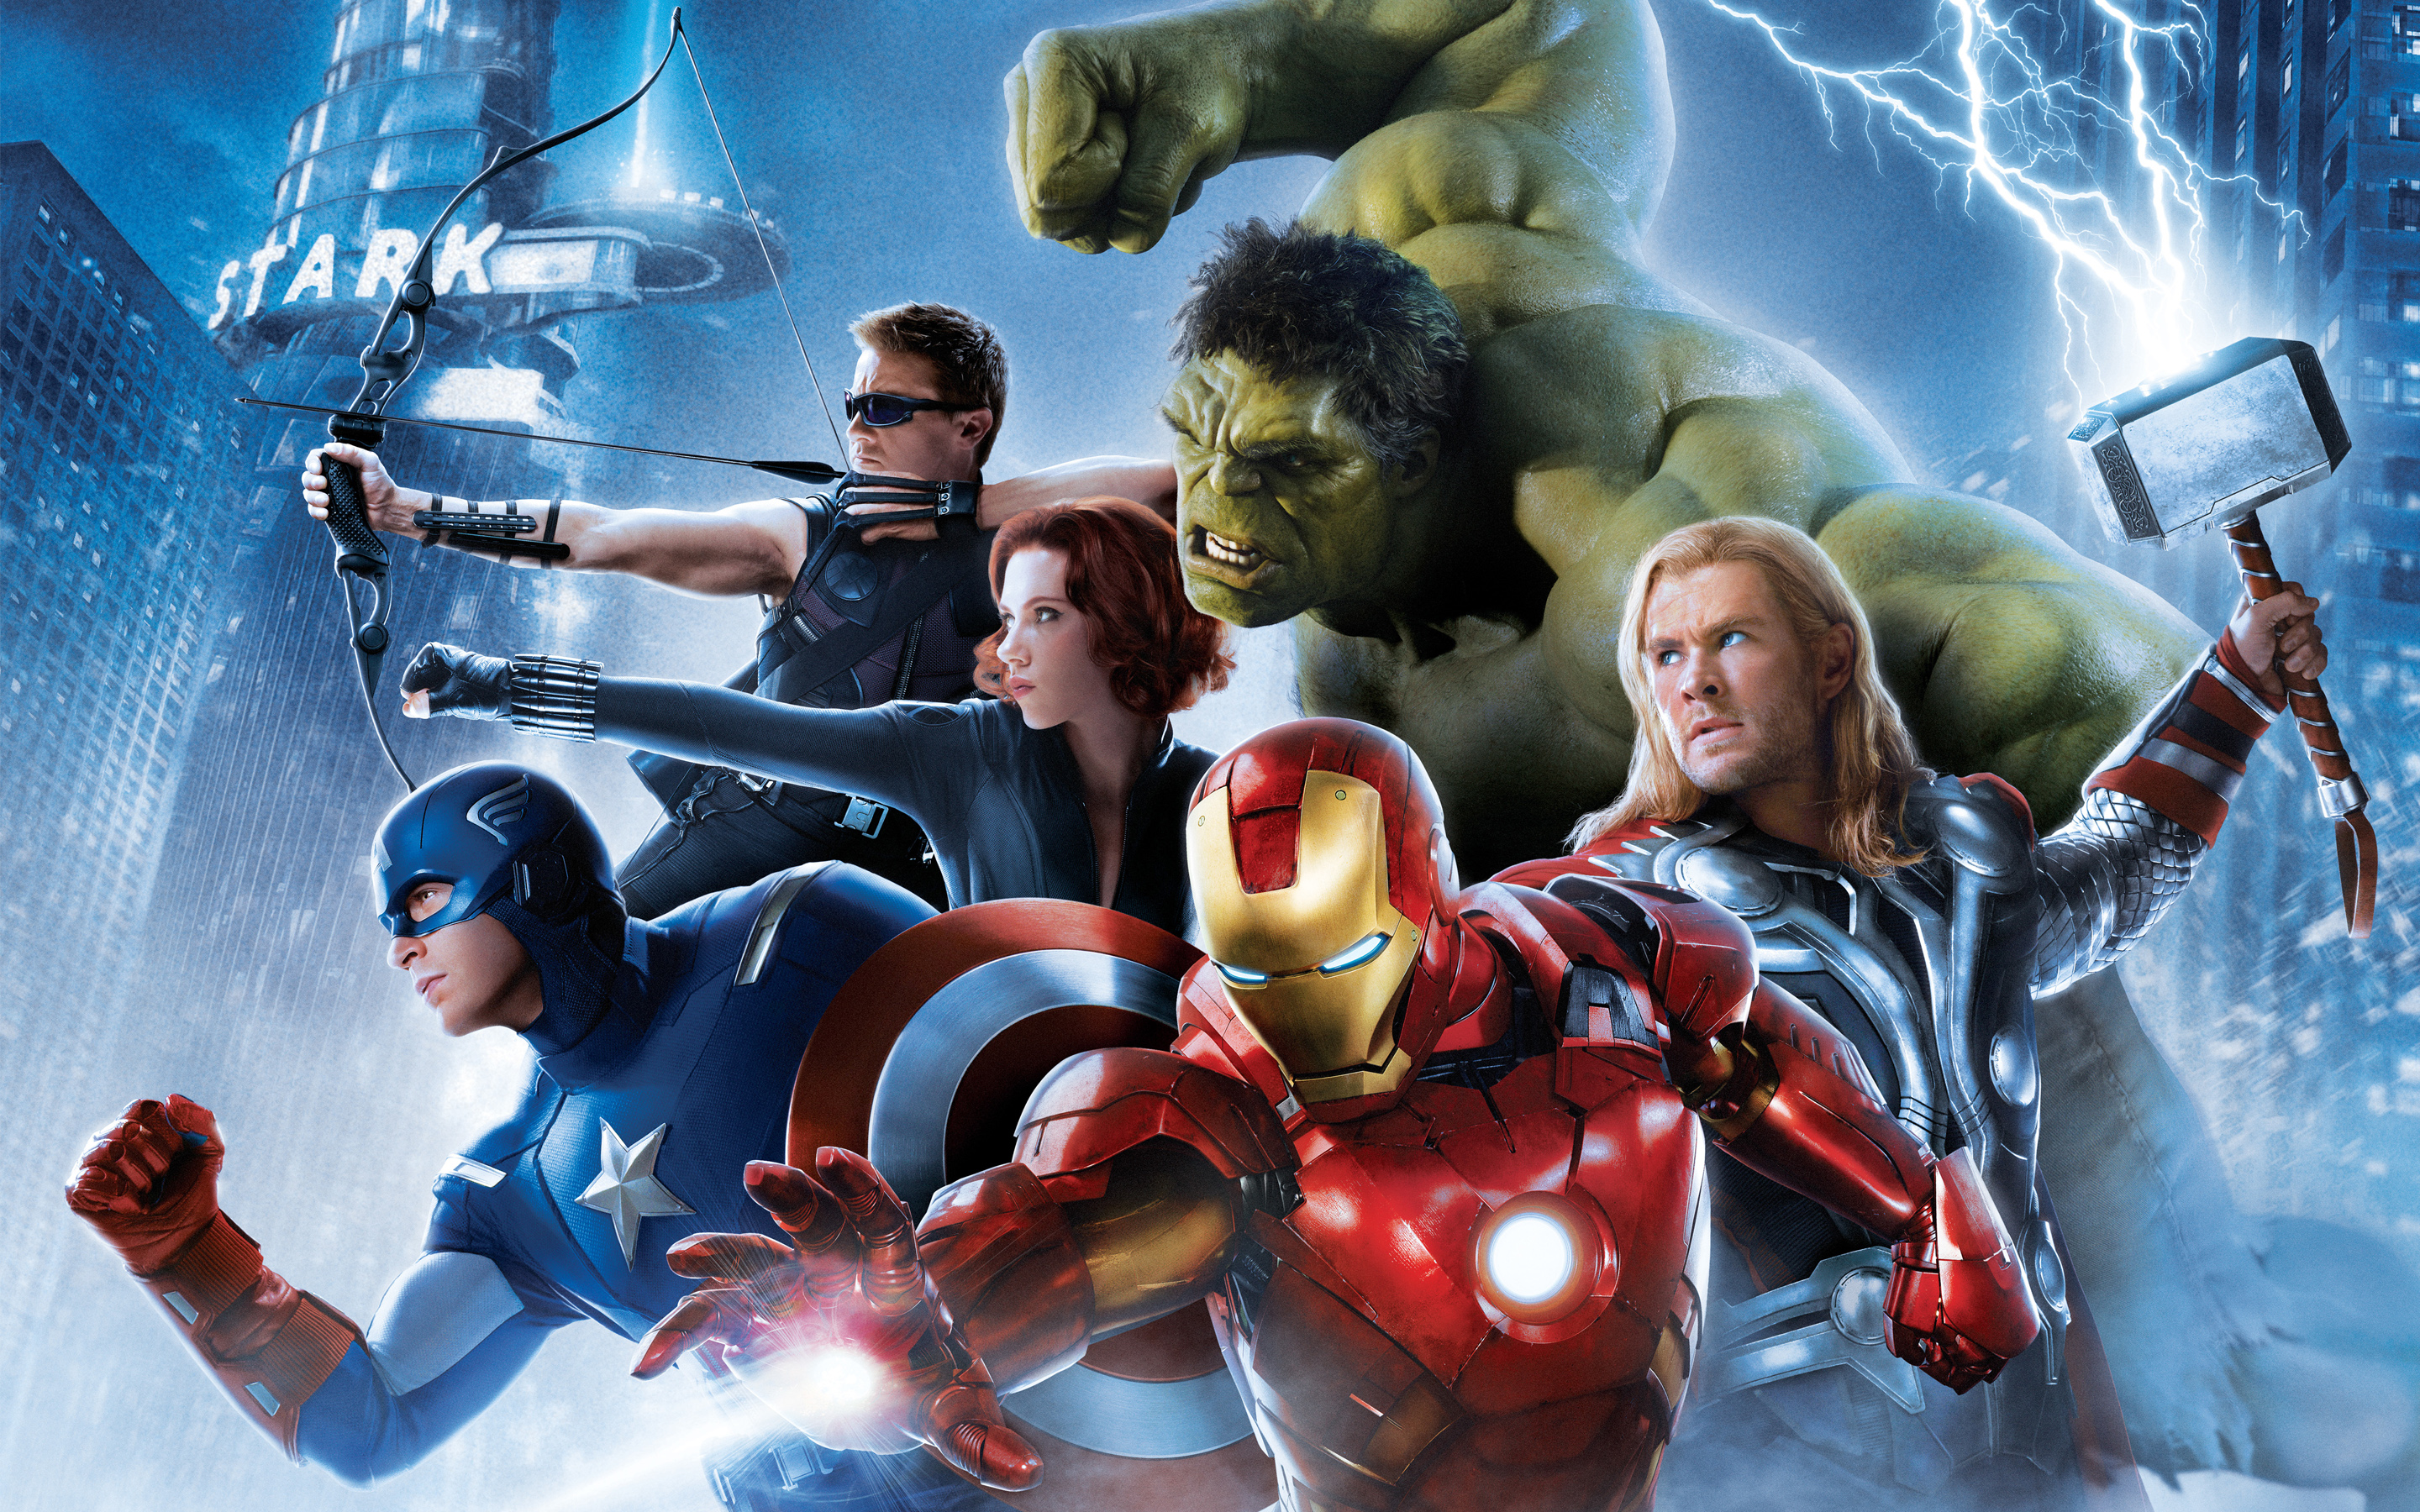 chris hemsworth images the avengers thor hd wallpaper and background